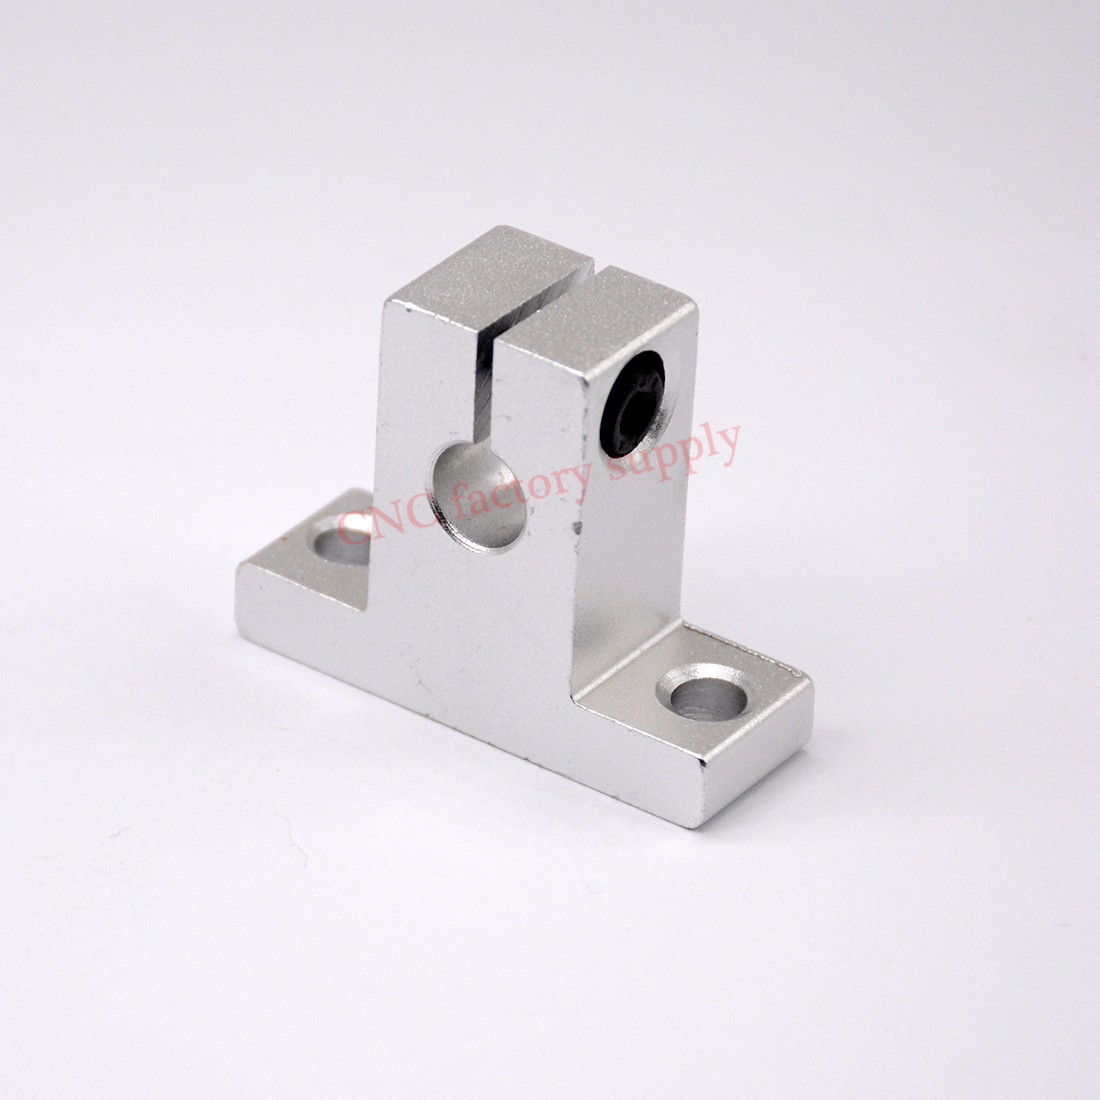 Hot sale 1pc SK10 10mm linear bearing rail shaft support XYZ Table CNC Router SH10A hot sale 1pc lm10uu linear bushing 10mm cnc linear bearings